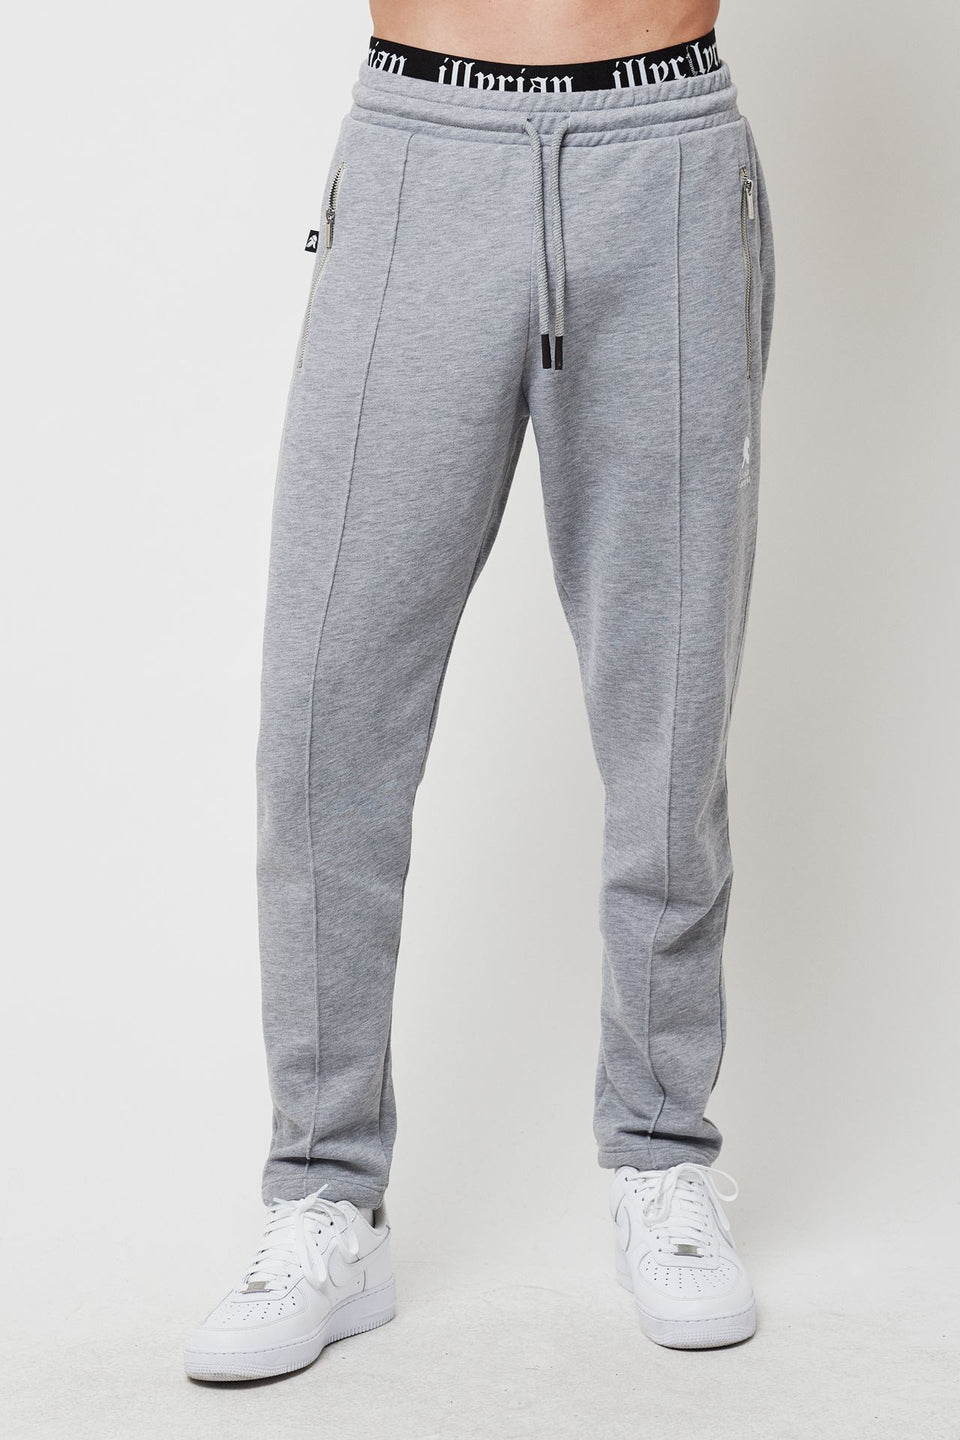 Illyrian Logo Grey Pants